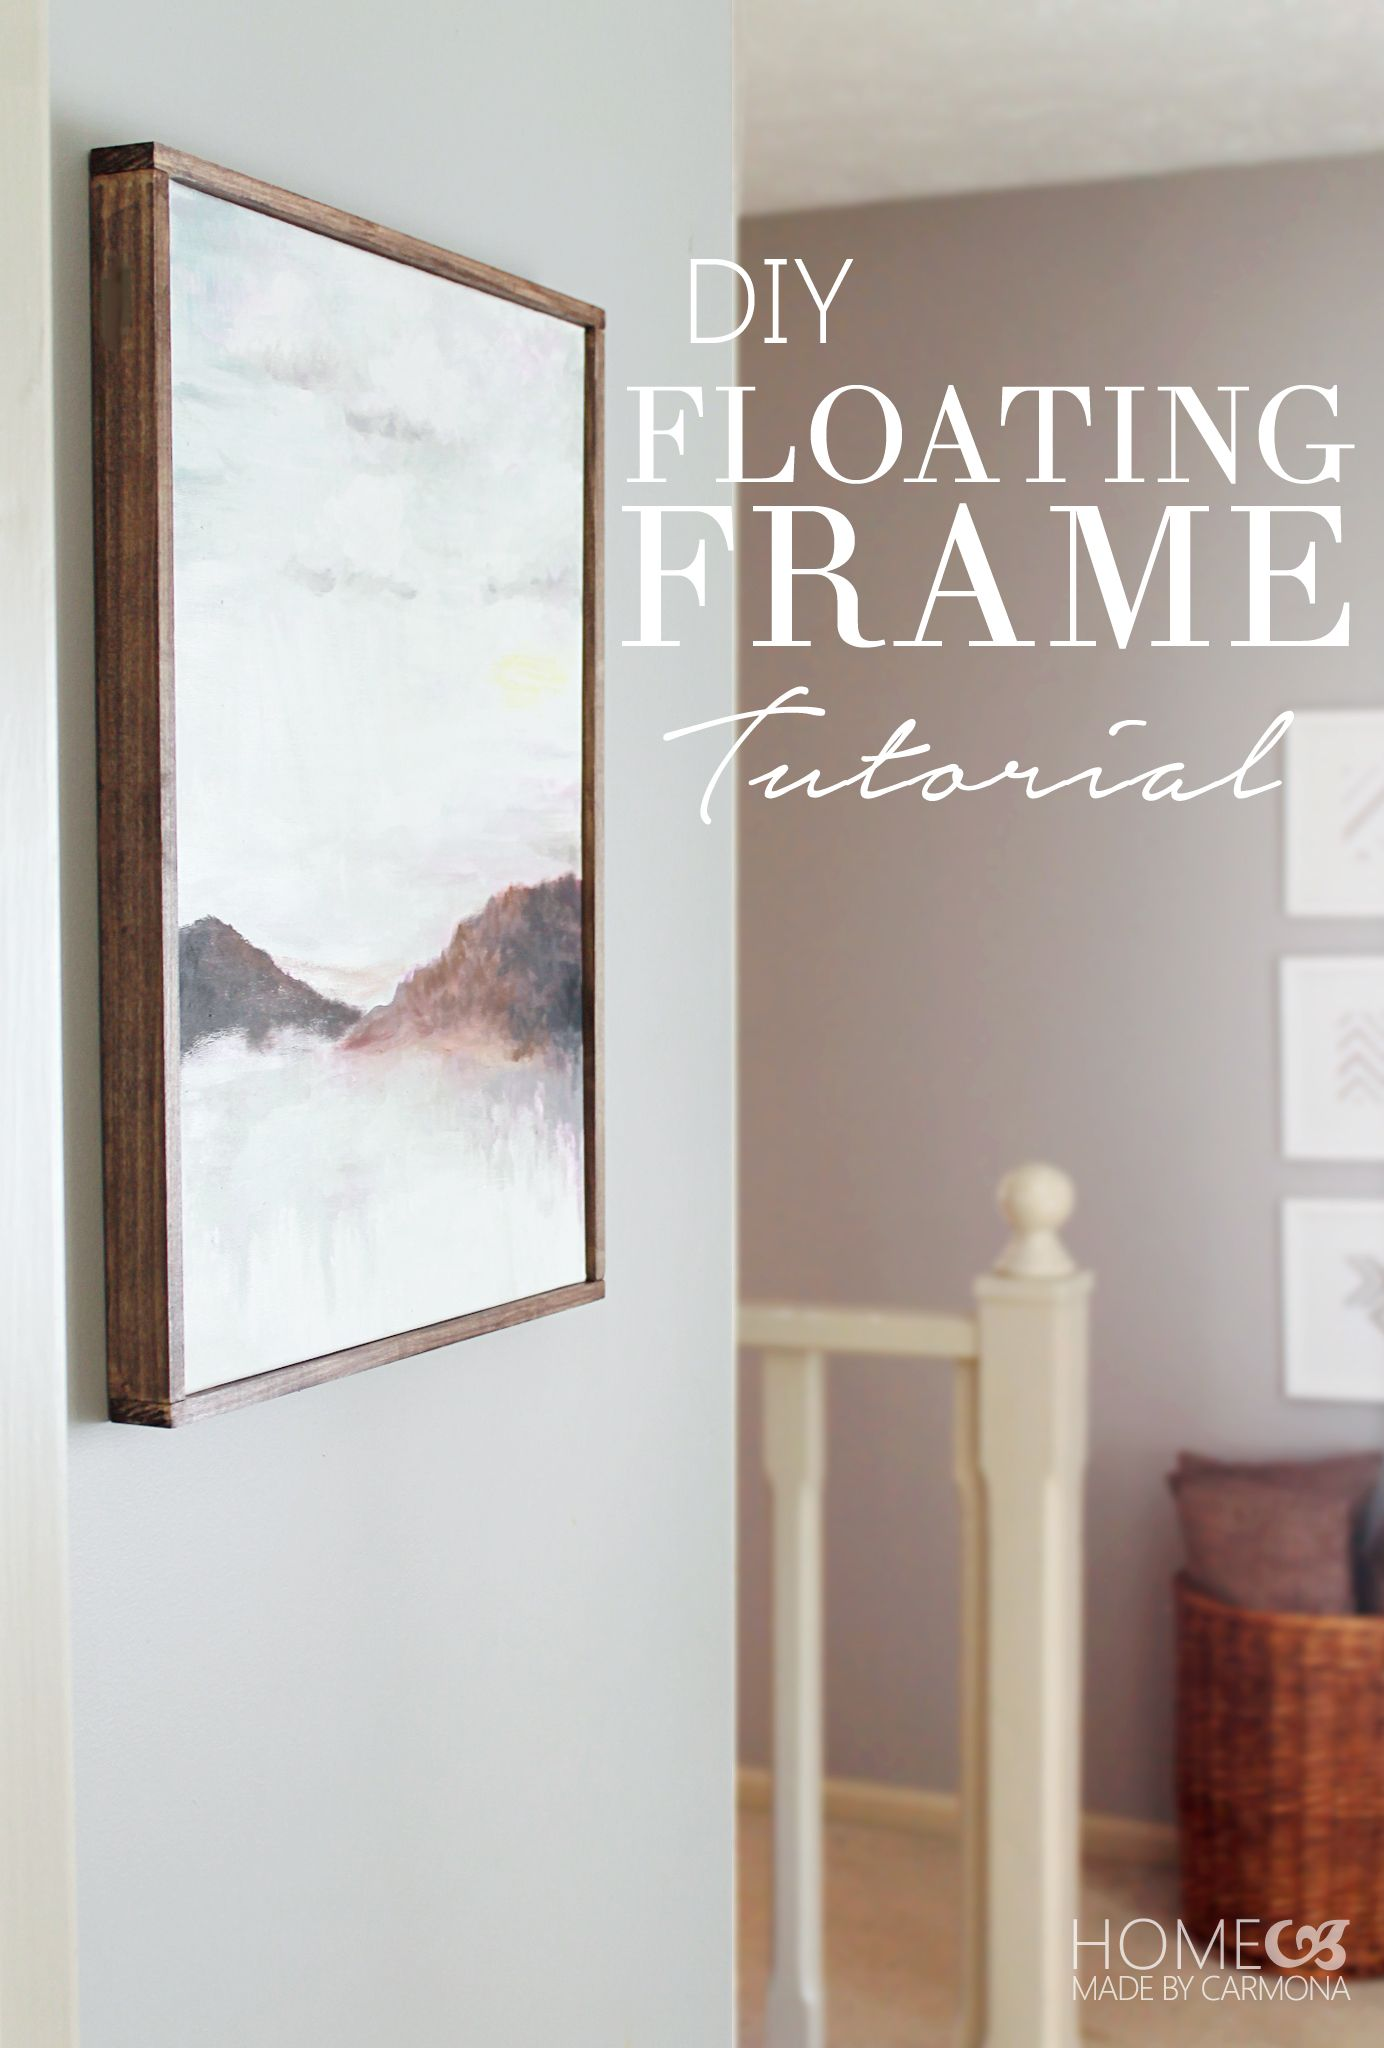 Diy floating frame tutorial floating frame tutorials and funky junk